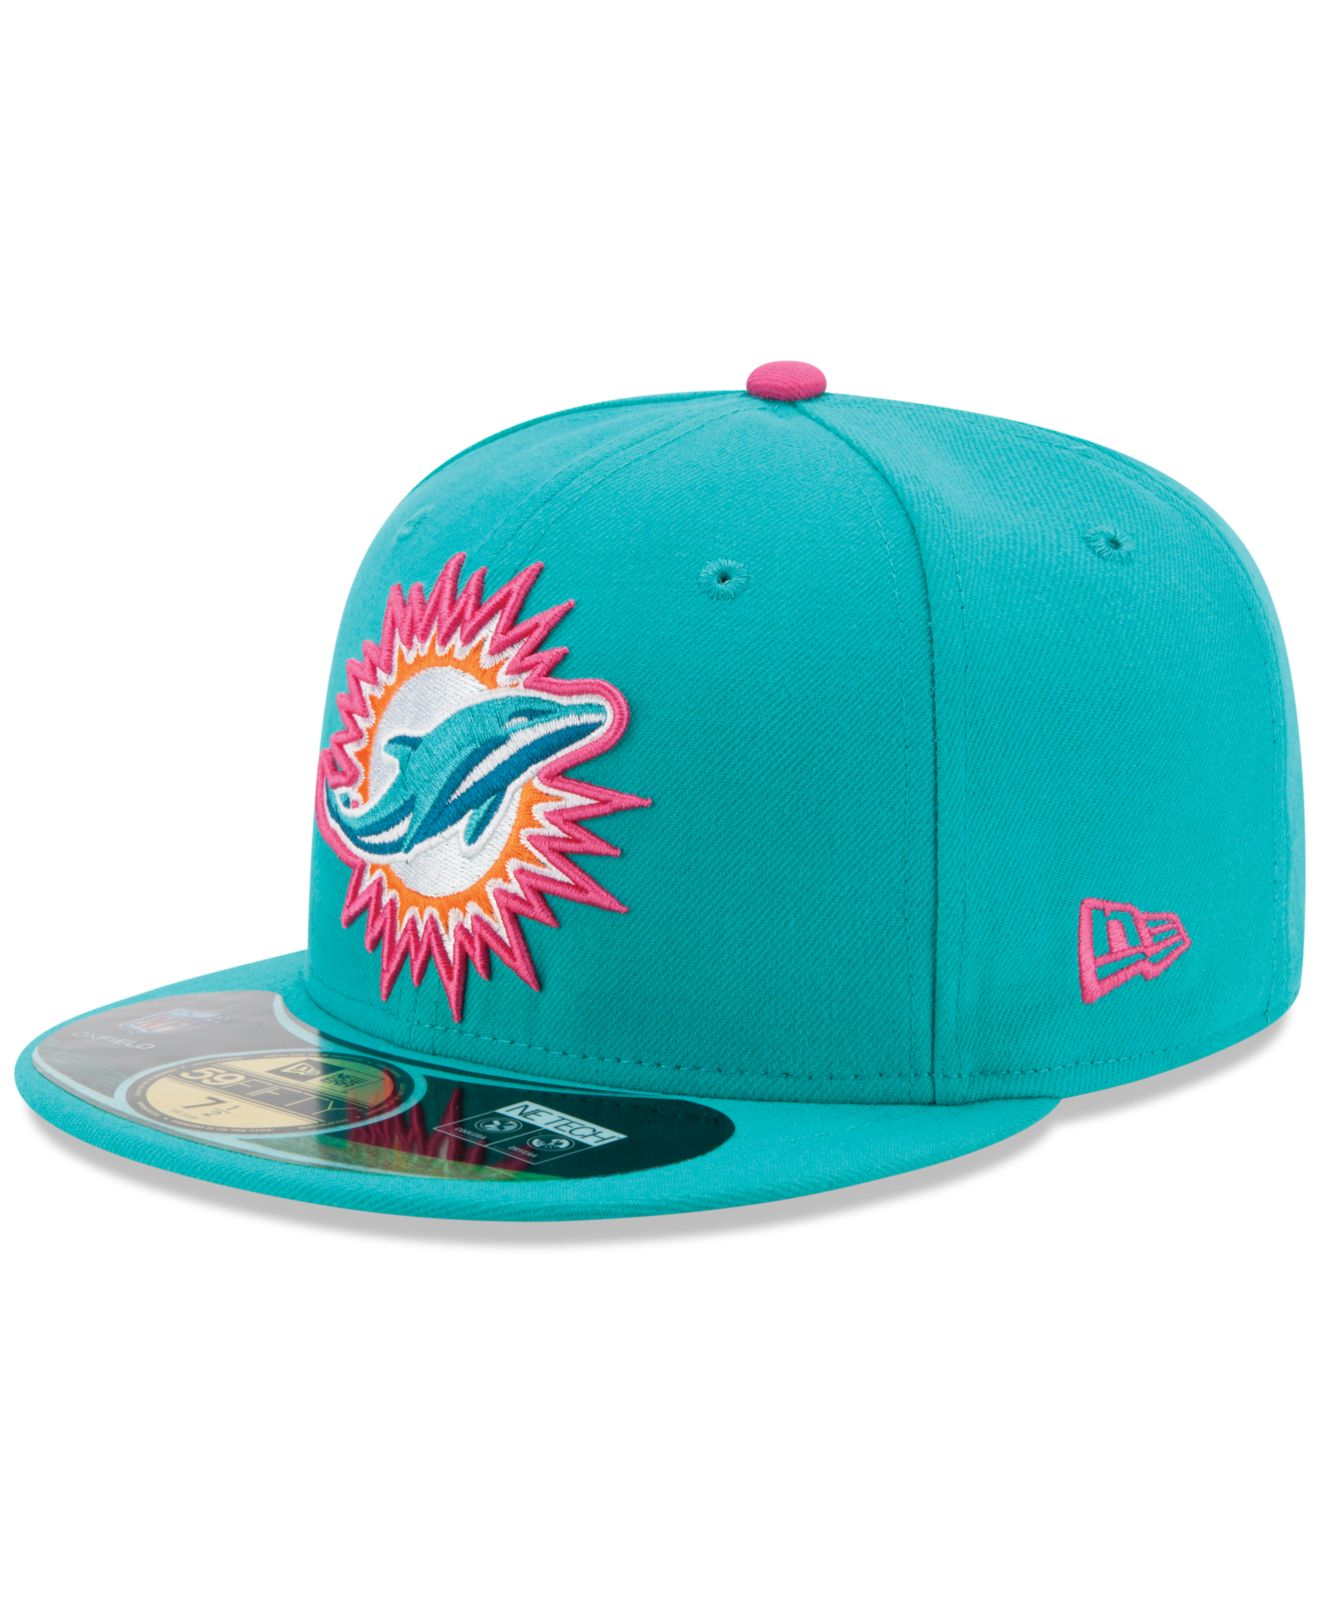 e67ae0357 ... knit where to buy lyst ktz miami dolphins breast cancer awareness  59fifty cap in blue for men ...